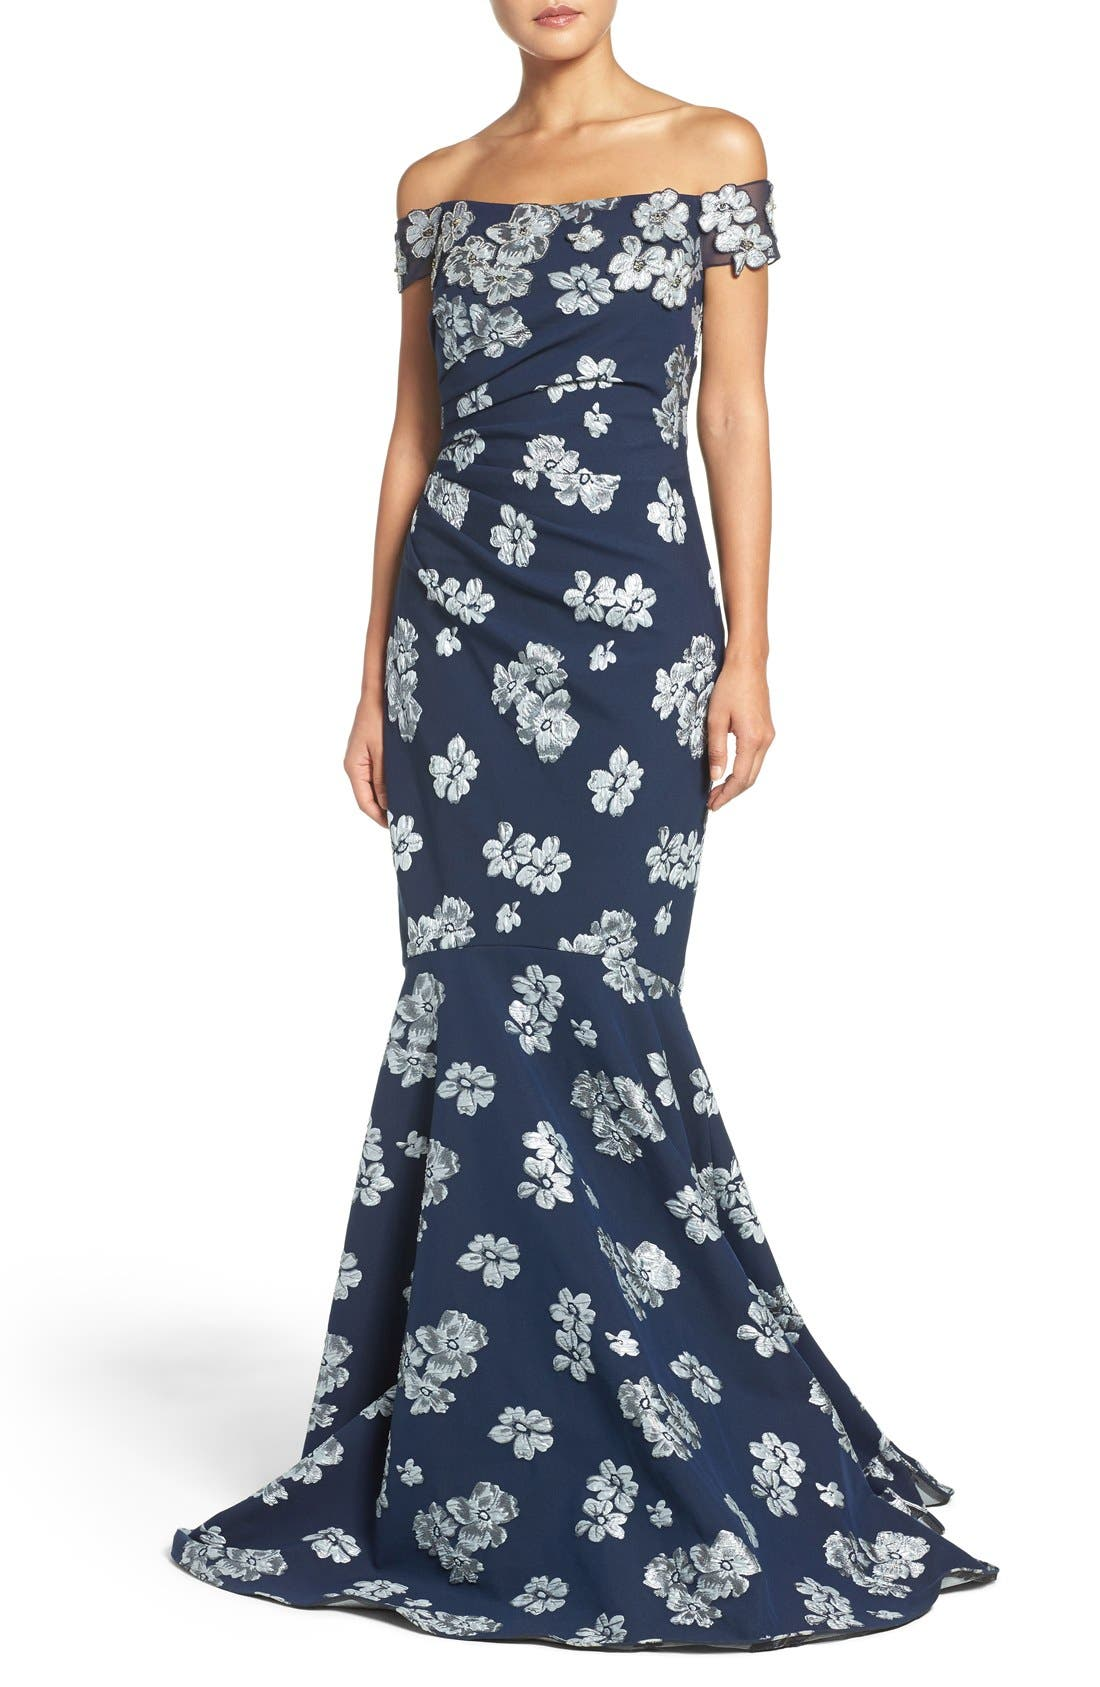 Main Image - Badgley Mischka Off the Shoulder Floral Mermaid Gown